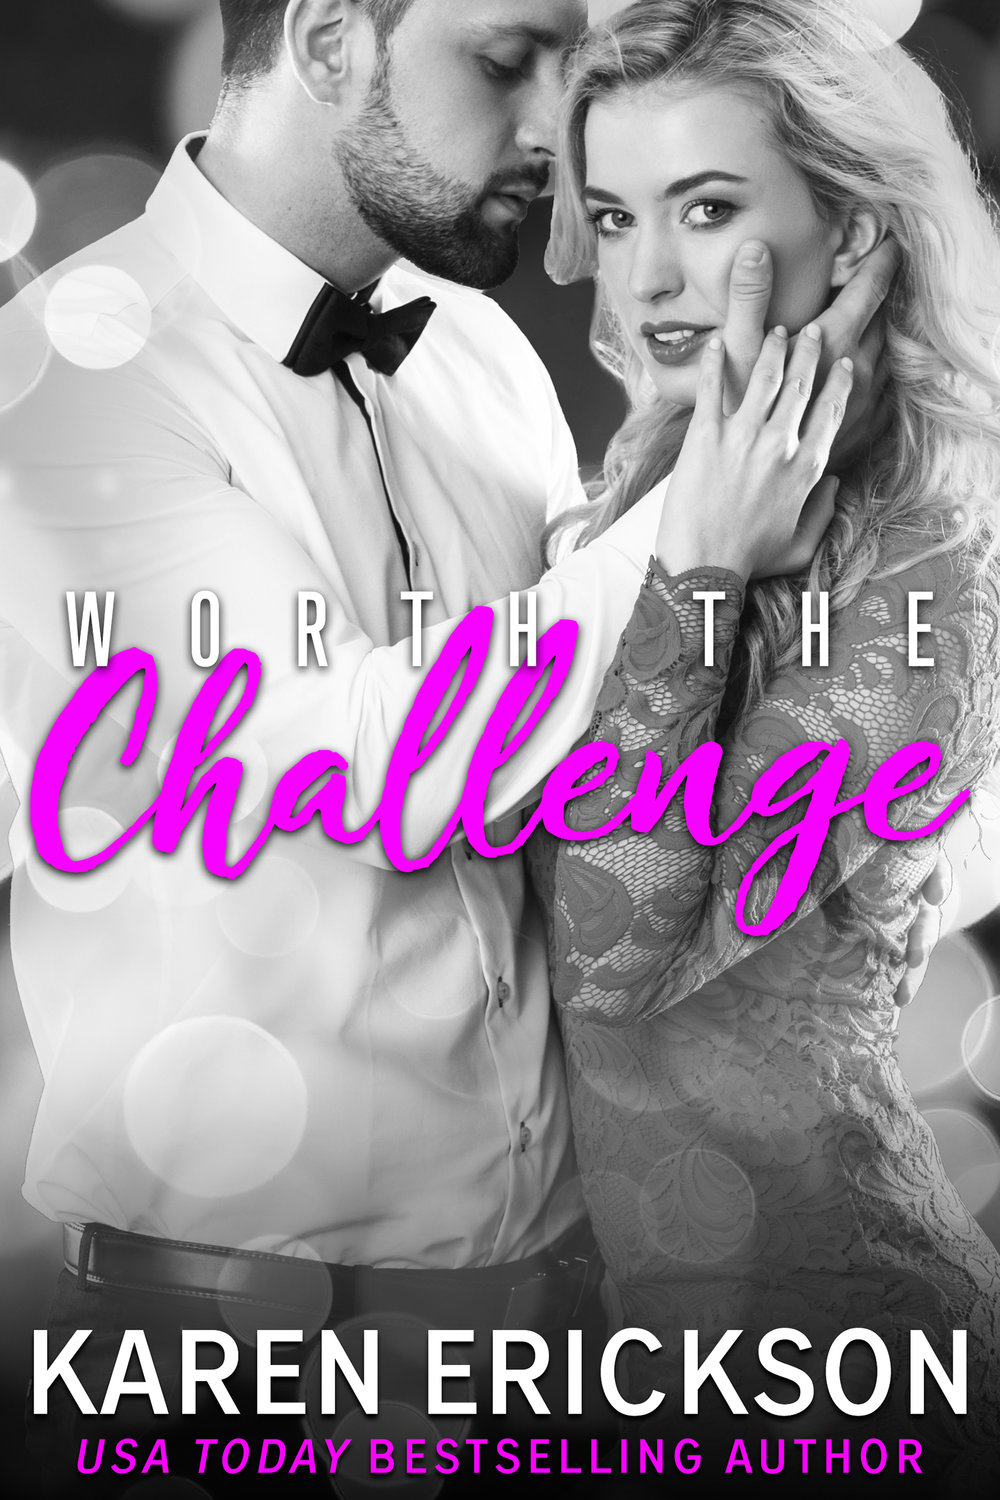 Worth The Challenge - Worth It, Book 3Amazon • B&N • iBooks • Kobo • GooglePlayCan you capture magic in a bottle?Rhett Worth has never lived up to his potential. He's ready to prove to his older brothers that he's more than his good looks; that he adds value to the family business beyond his panty-dropping smile. Except that the one job he was given, developing and delivering Worth Luxury's signature scent, has wafted away along with the perfumer.Gabriella Durand enters the boardroom prepared to beg the Worths to give her father a second chance at creating the blend he was tasked with. Instead, she finds the devastatingly handsome Rhett presenting her as the second chance. Hungry to step out of her family's shadow, she plays along.Soon, the two find themselves in Maui, hunting for the perfect scent. Despite his vow of professionalism, Rhett can't fight the passion between him and Gabriella.The tropical breeze that washes across their intertwined bodies offers salvation, but a whiff of betrayal threatens to destroy everything.Amazon • B&N • iBooks • Kobo • GooglePlay